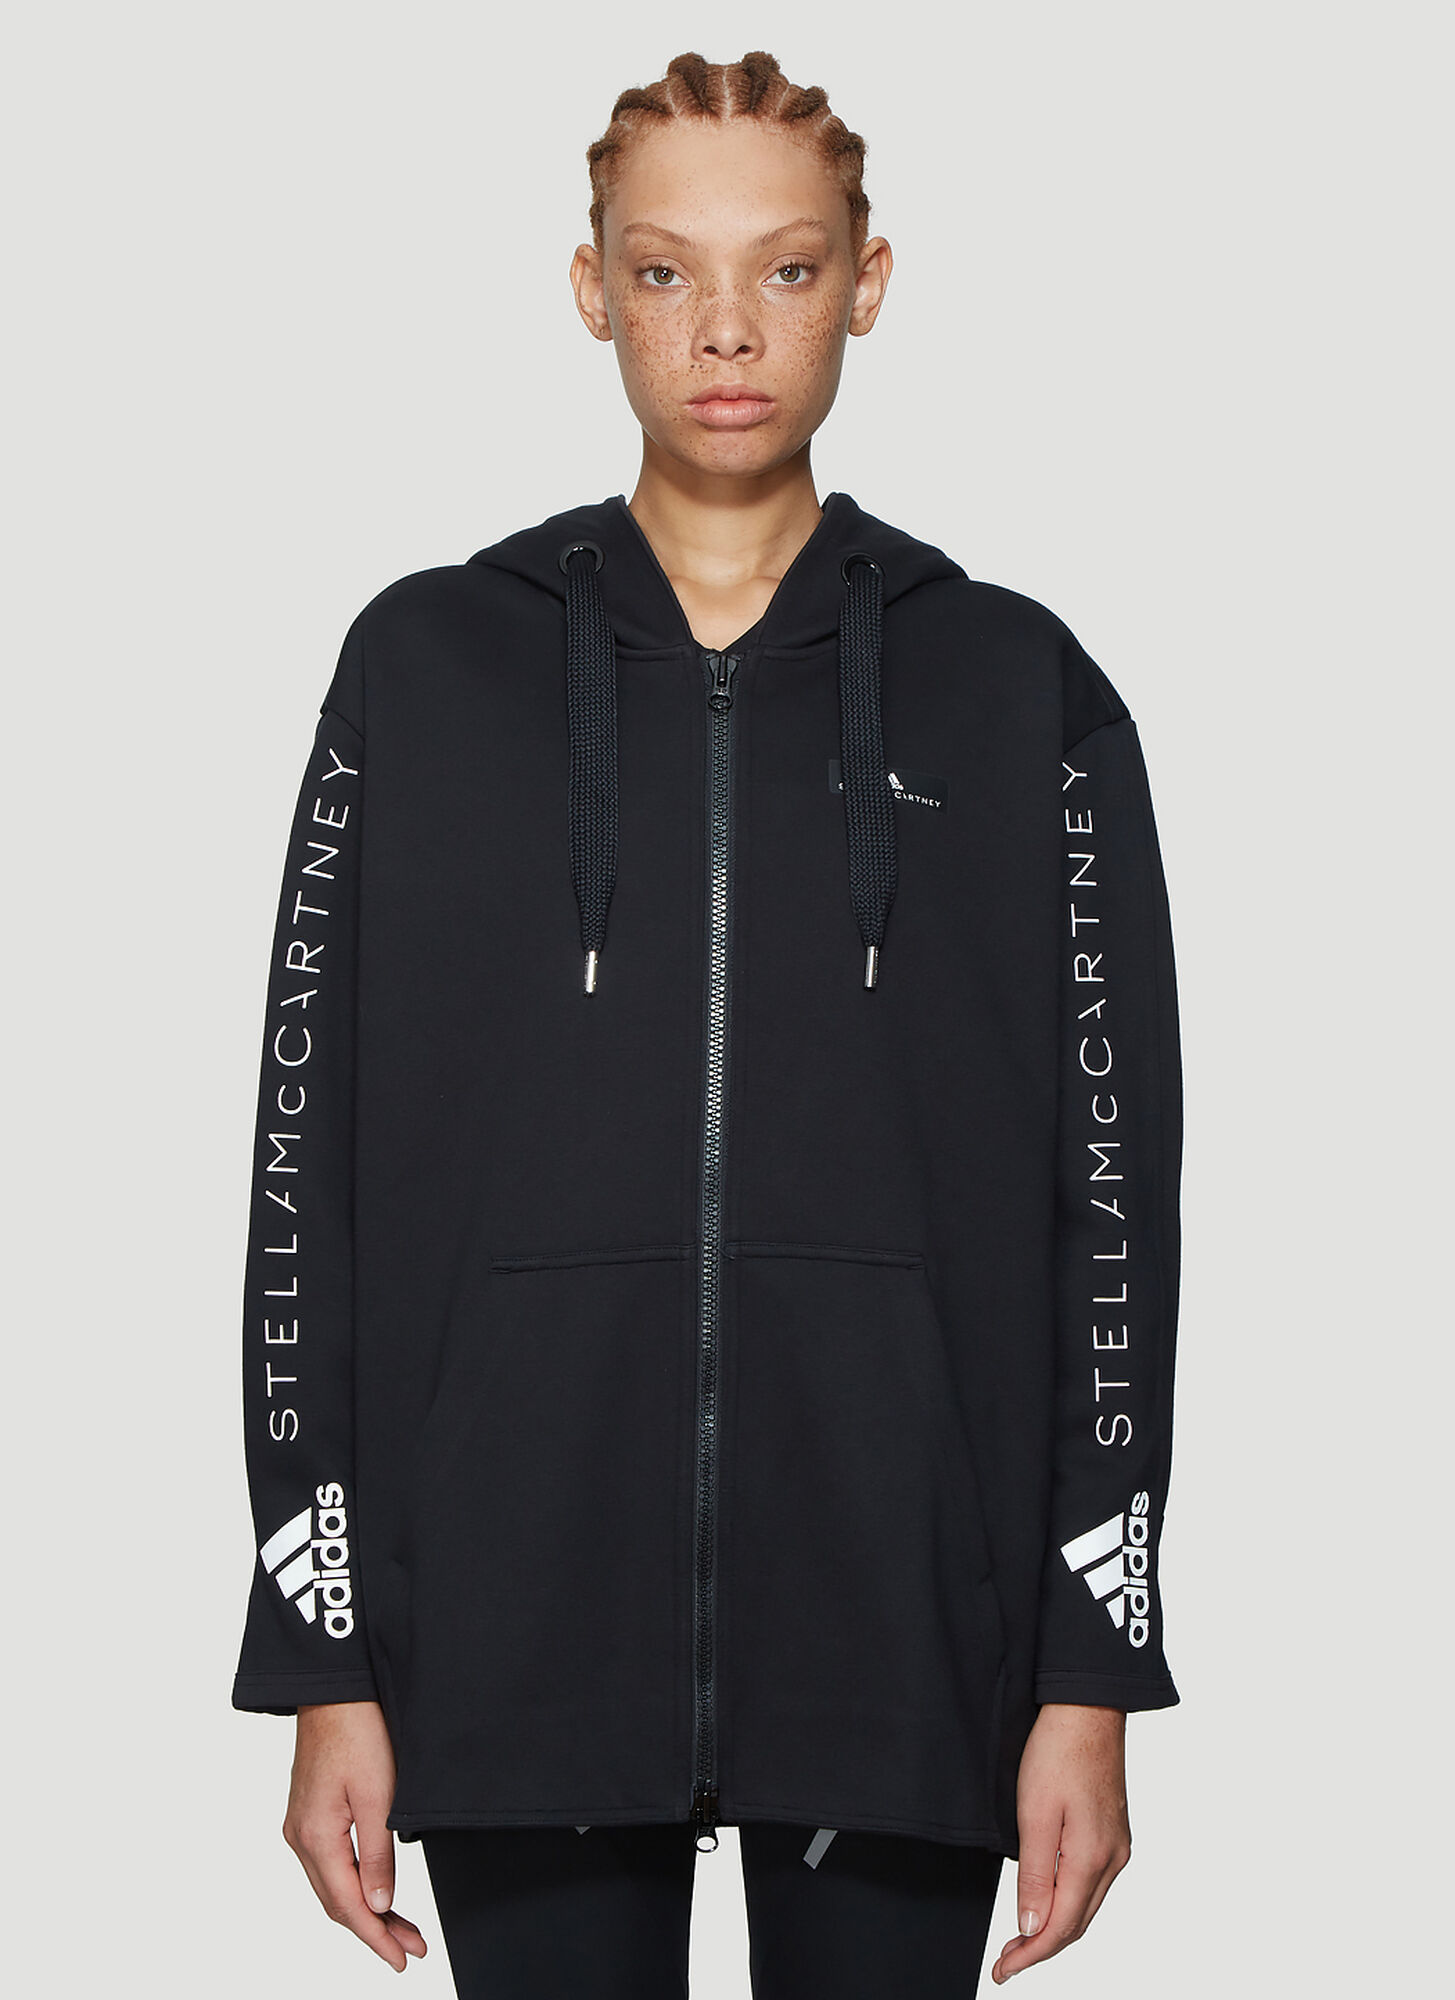 adidas by Stella McCartney Oversized Hooded Jacket in Black